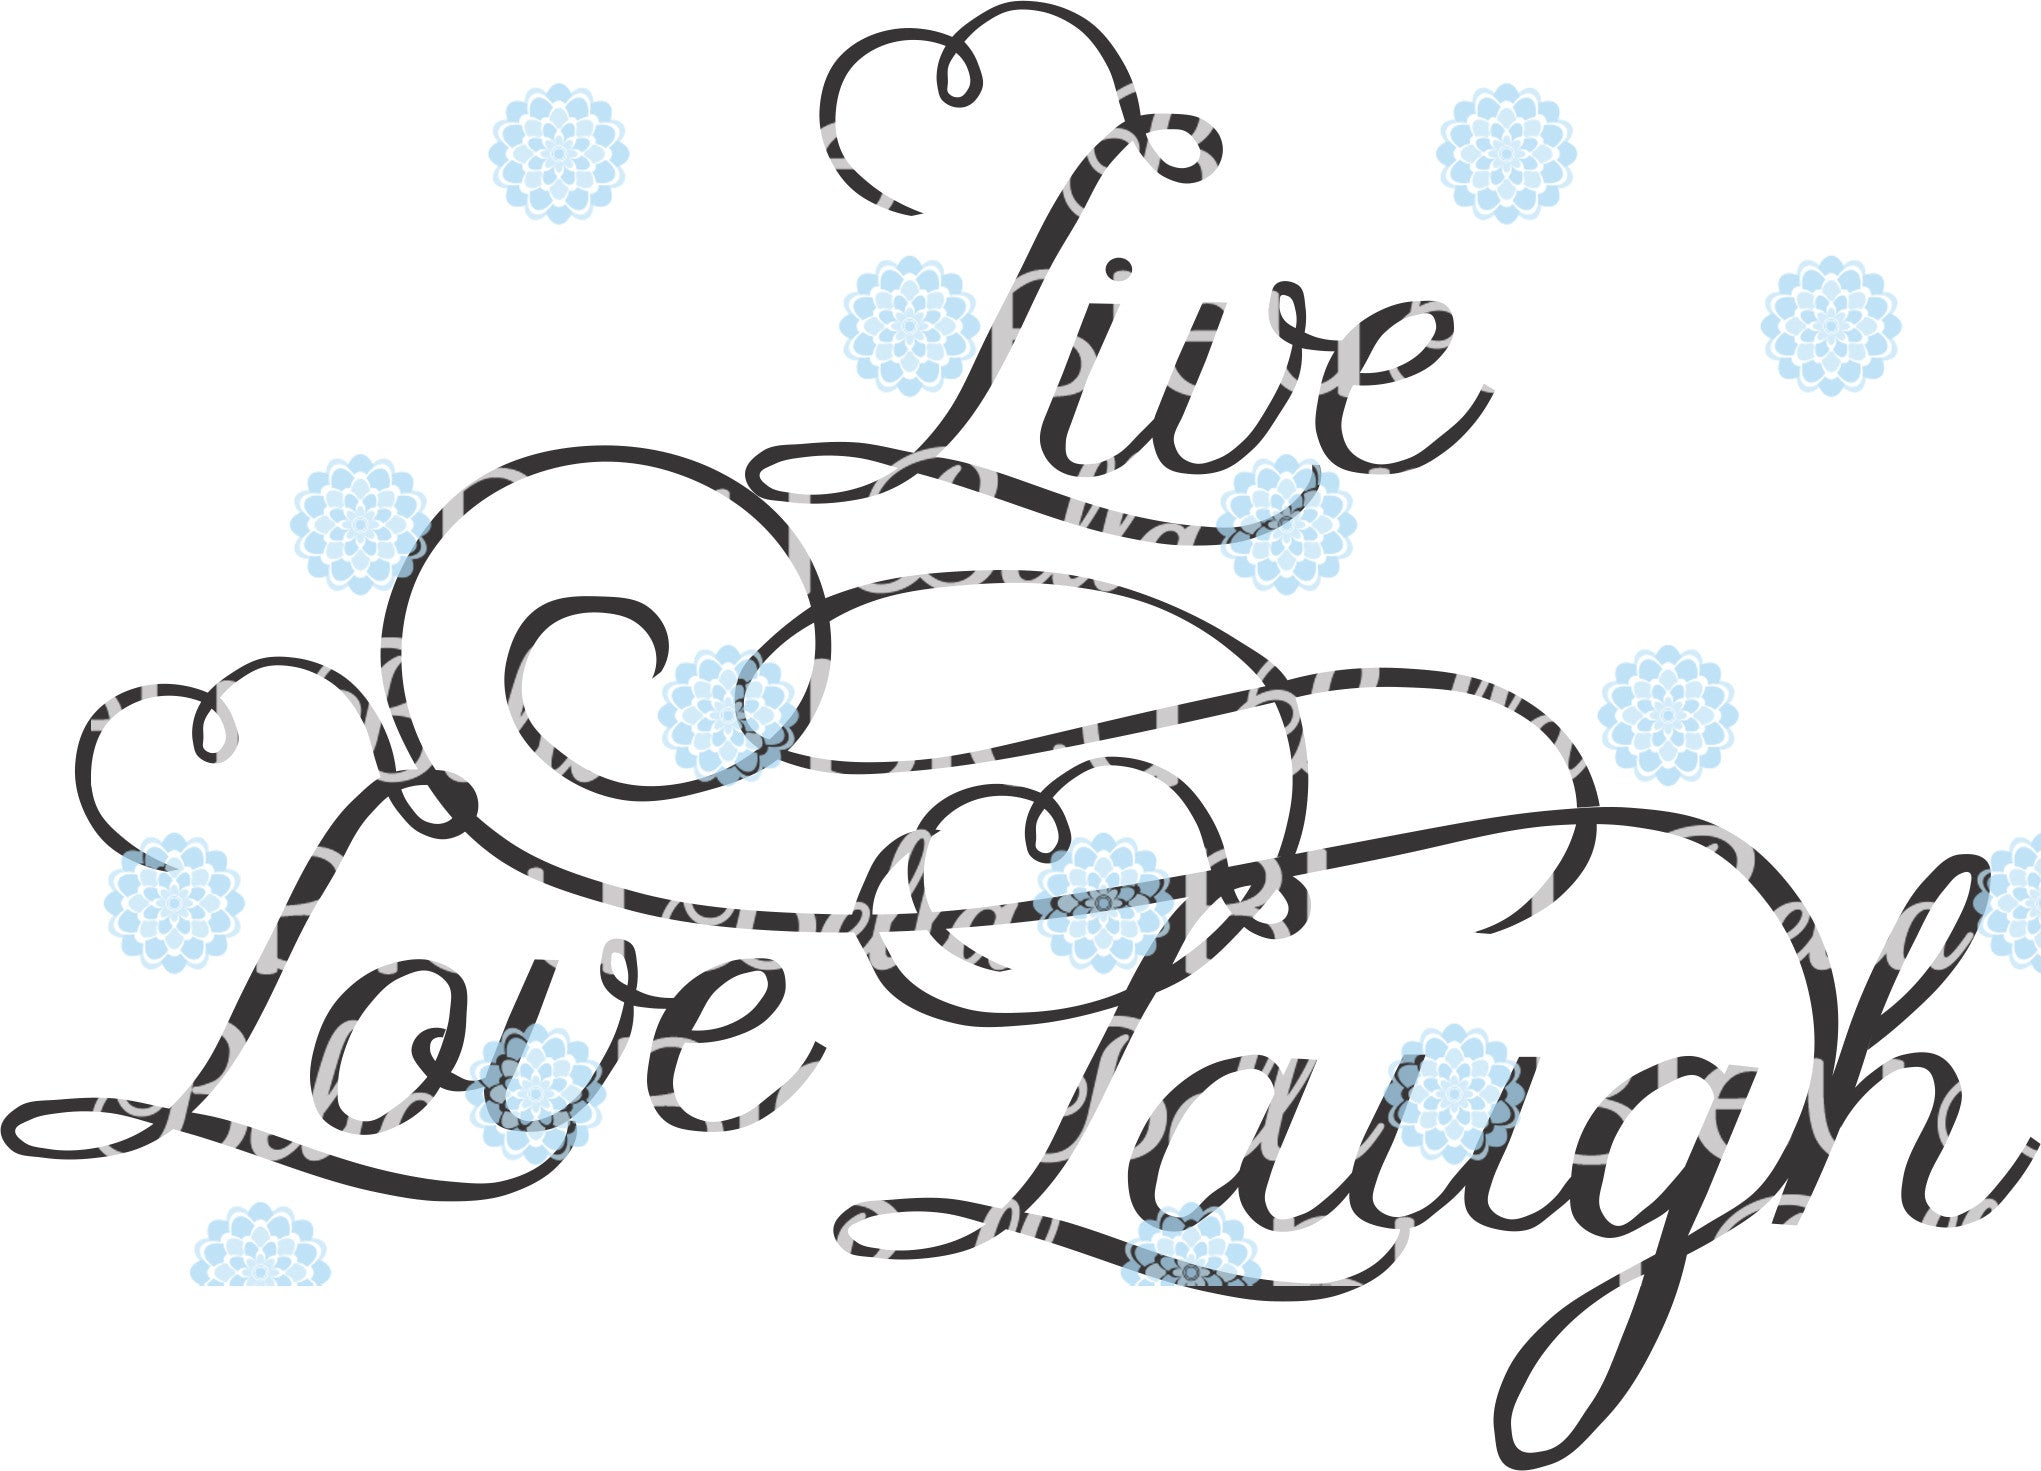 Live Love Laugh Svg Cutting Vinyl File Silhouette Wording Saying Bella Bleu Embroidery